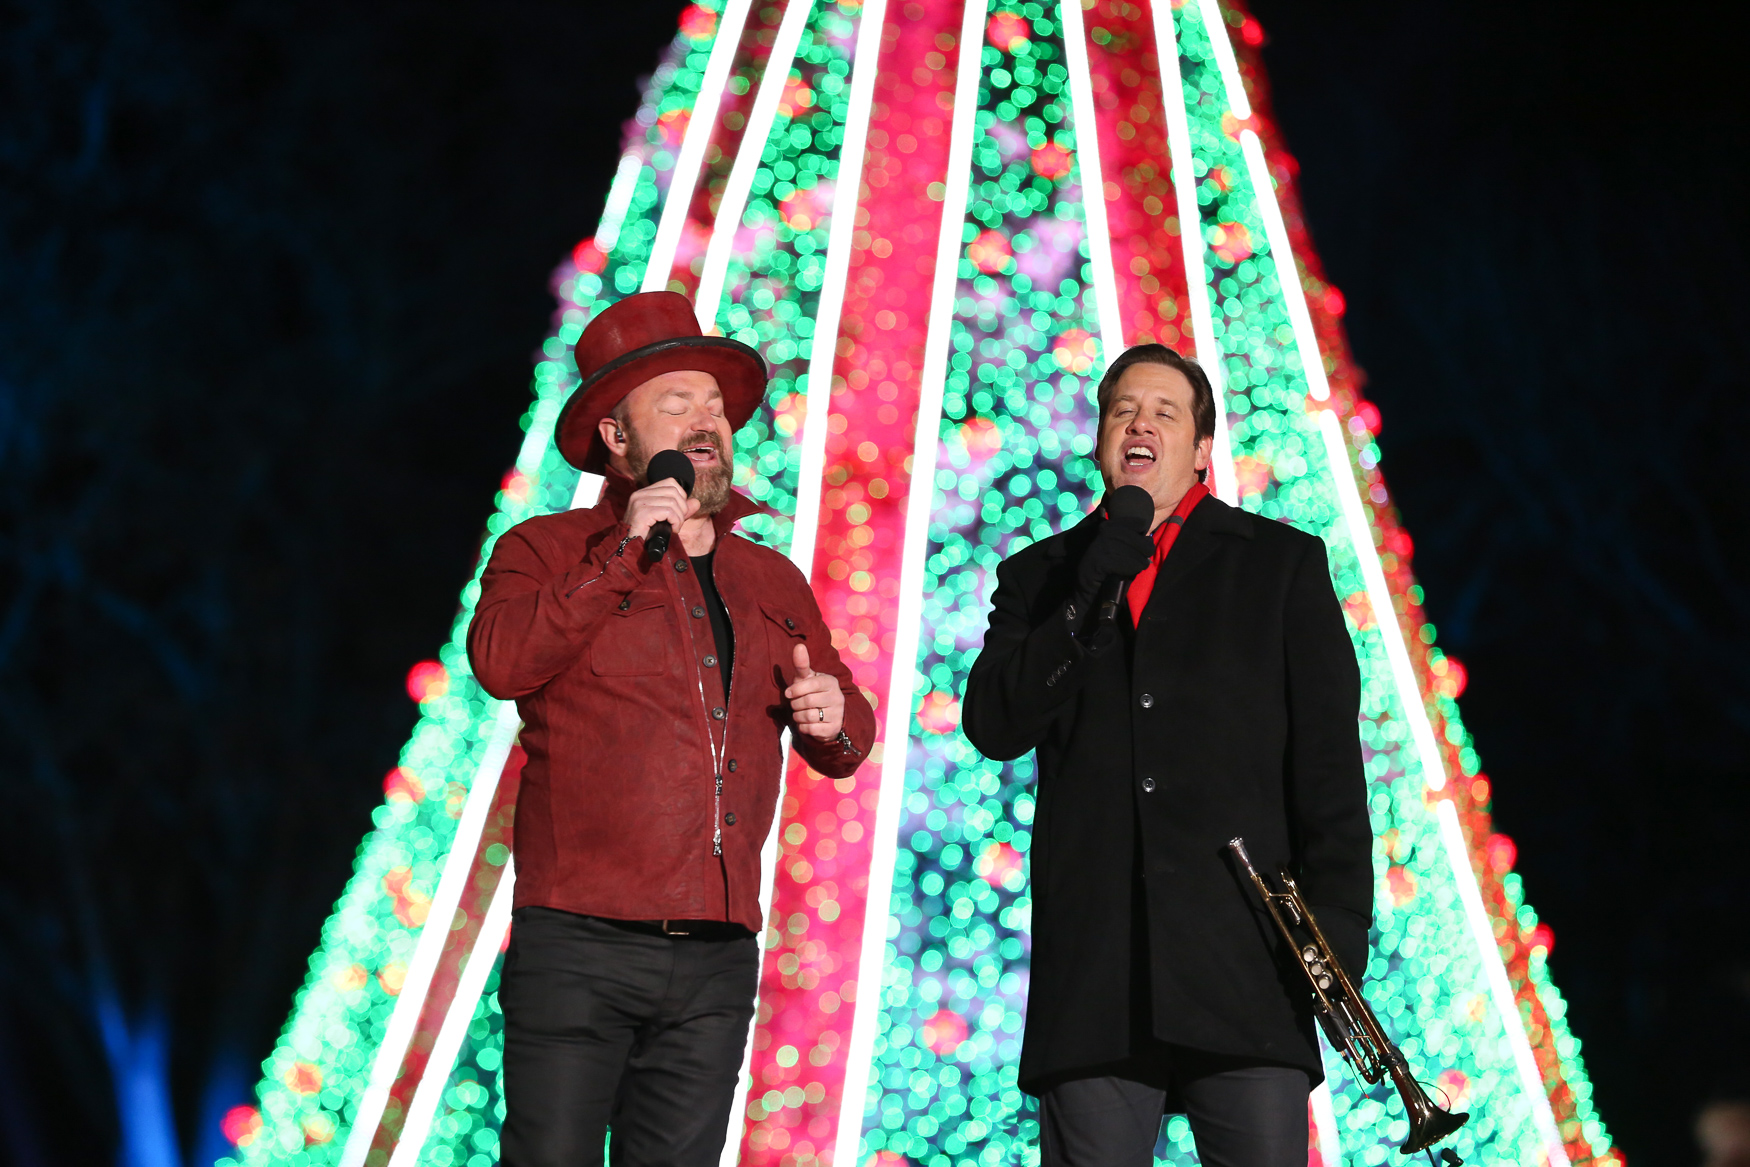 Despite frigid cold, the 2018 National Christmas Tree was illuminated by President Donald Trump and First Lady Melania Trump on November 28. The talent for the evening included some lesser-known acts, but they tried to rouse the holiday spirit with familiar Christmas carols. The festivities were hosted by Antonio Sabato Jr., a former model and soap opera store who supported President Trump during his 2016 campaign.  The celebration will be broadcast on Ovation or REELZ on December 2 at 10 p.m. EST. (Amanda Andrade-Rhoades/DC Refined)